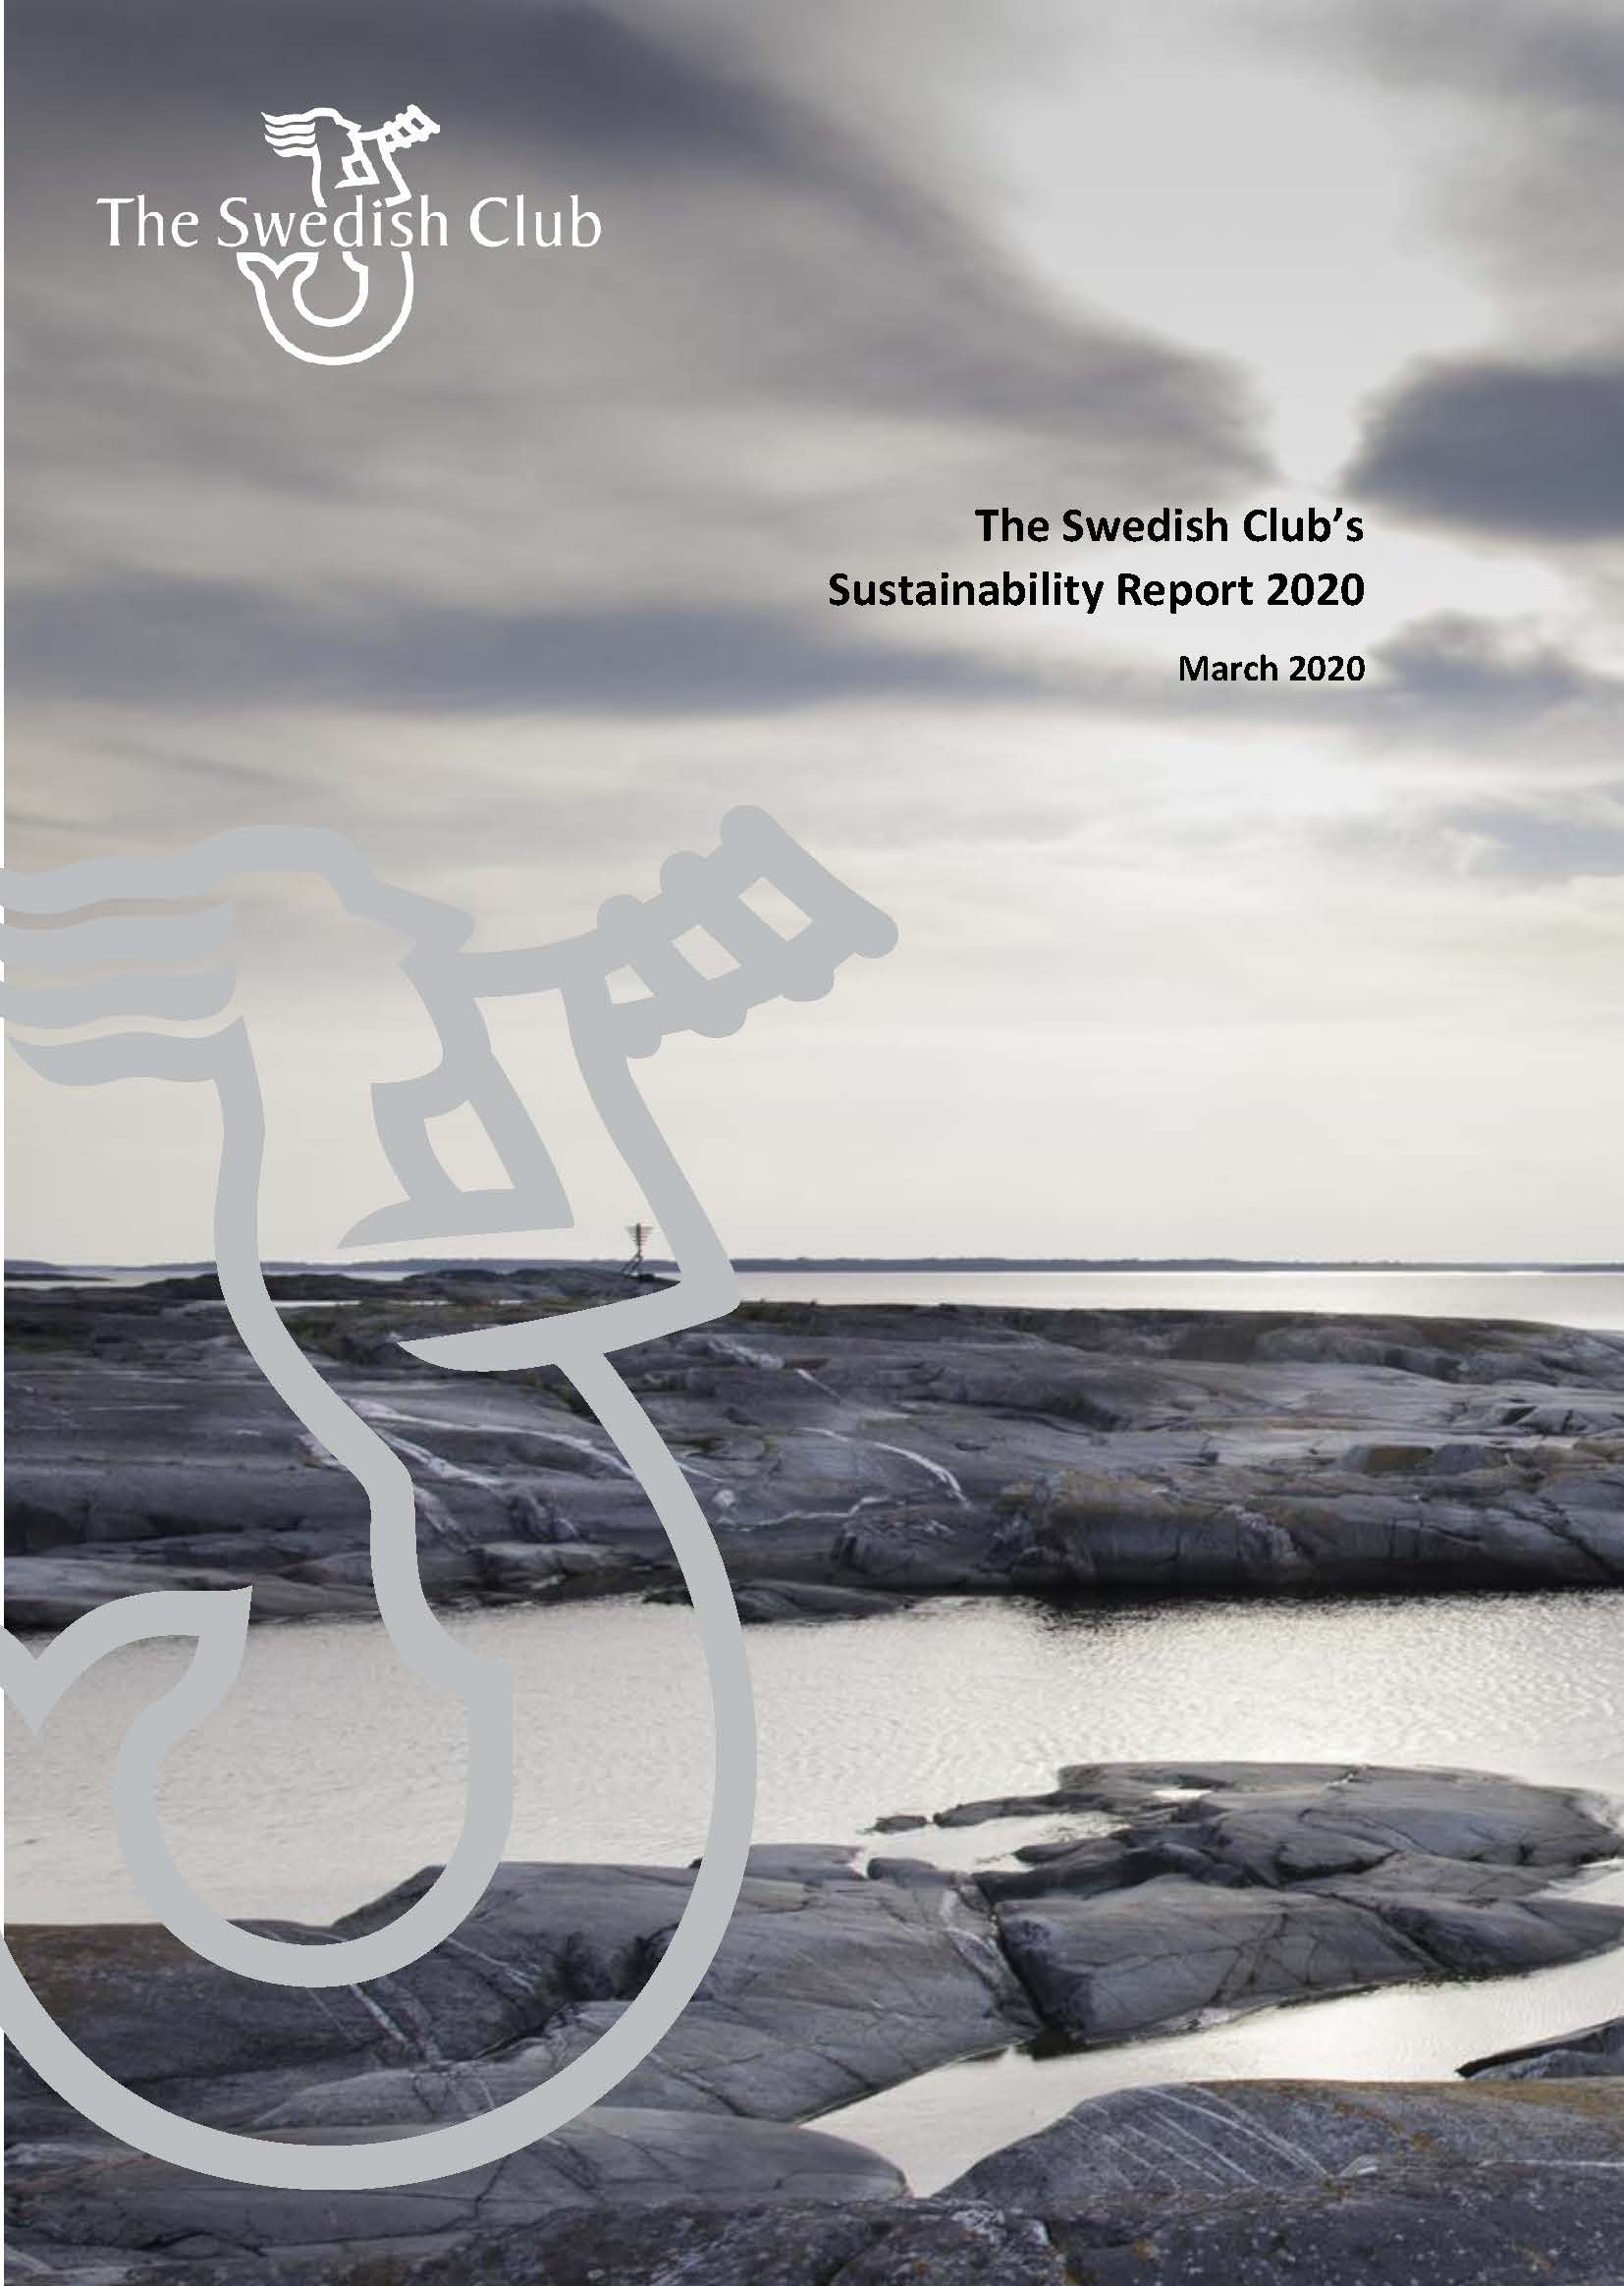 The Swedish Club's Sustainability Report 2020